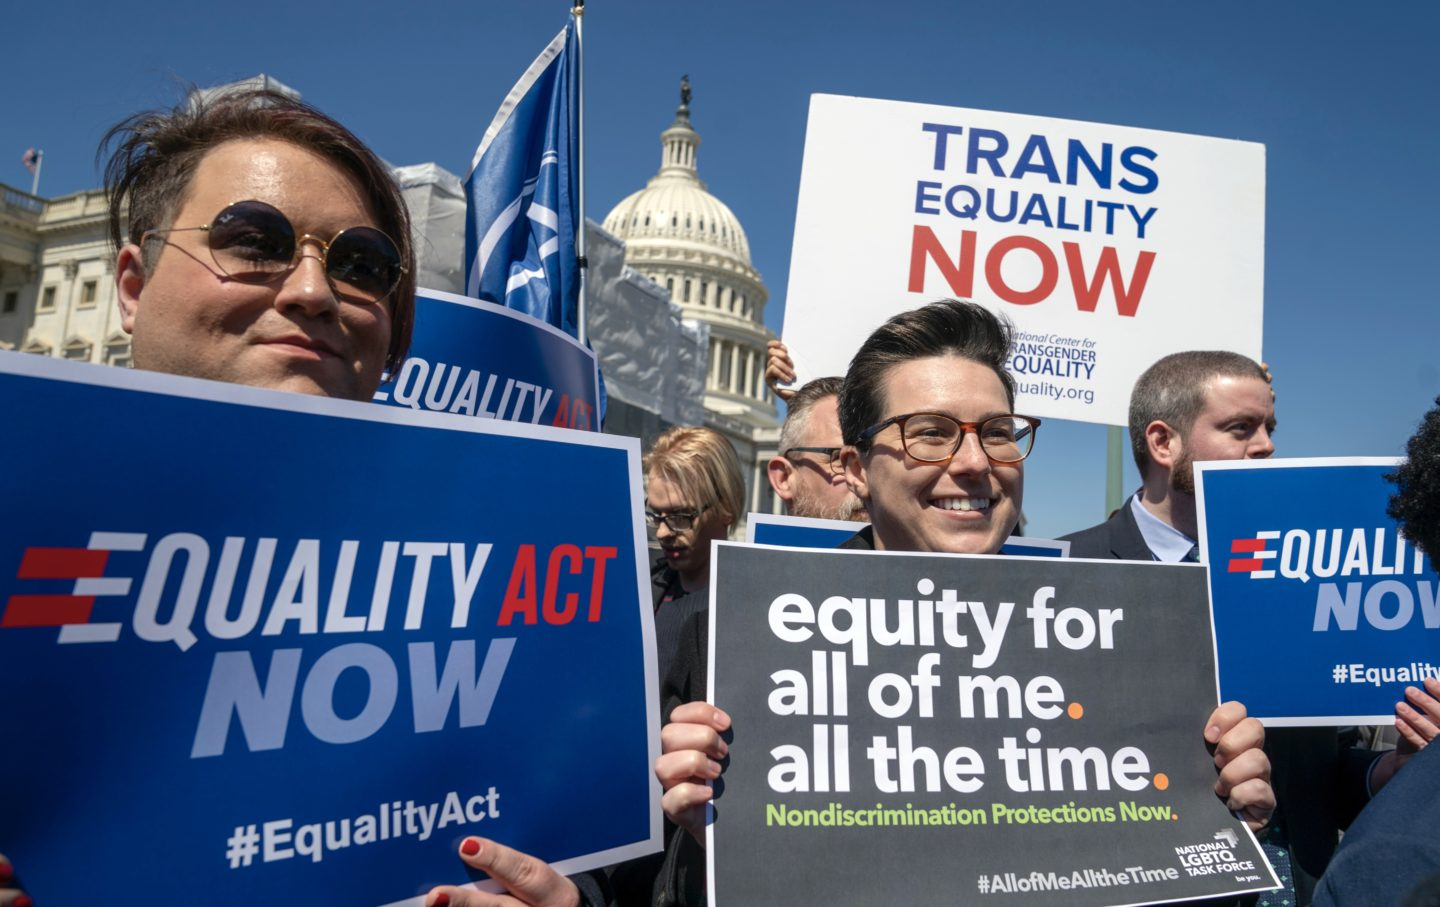 Equality-Act-Baldwin-ap-img